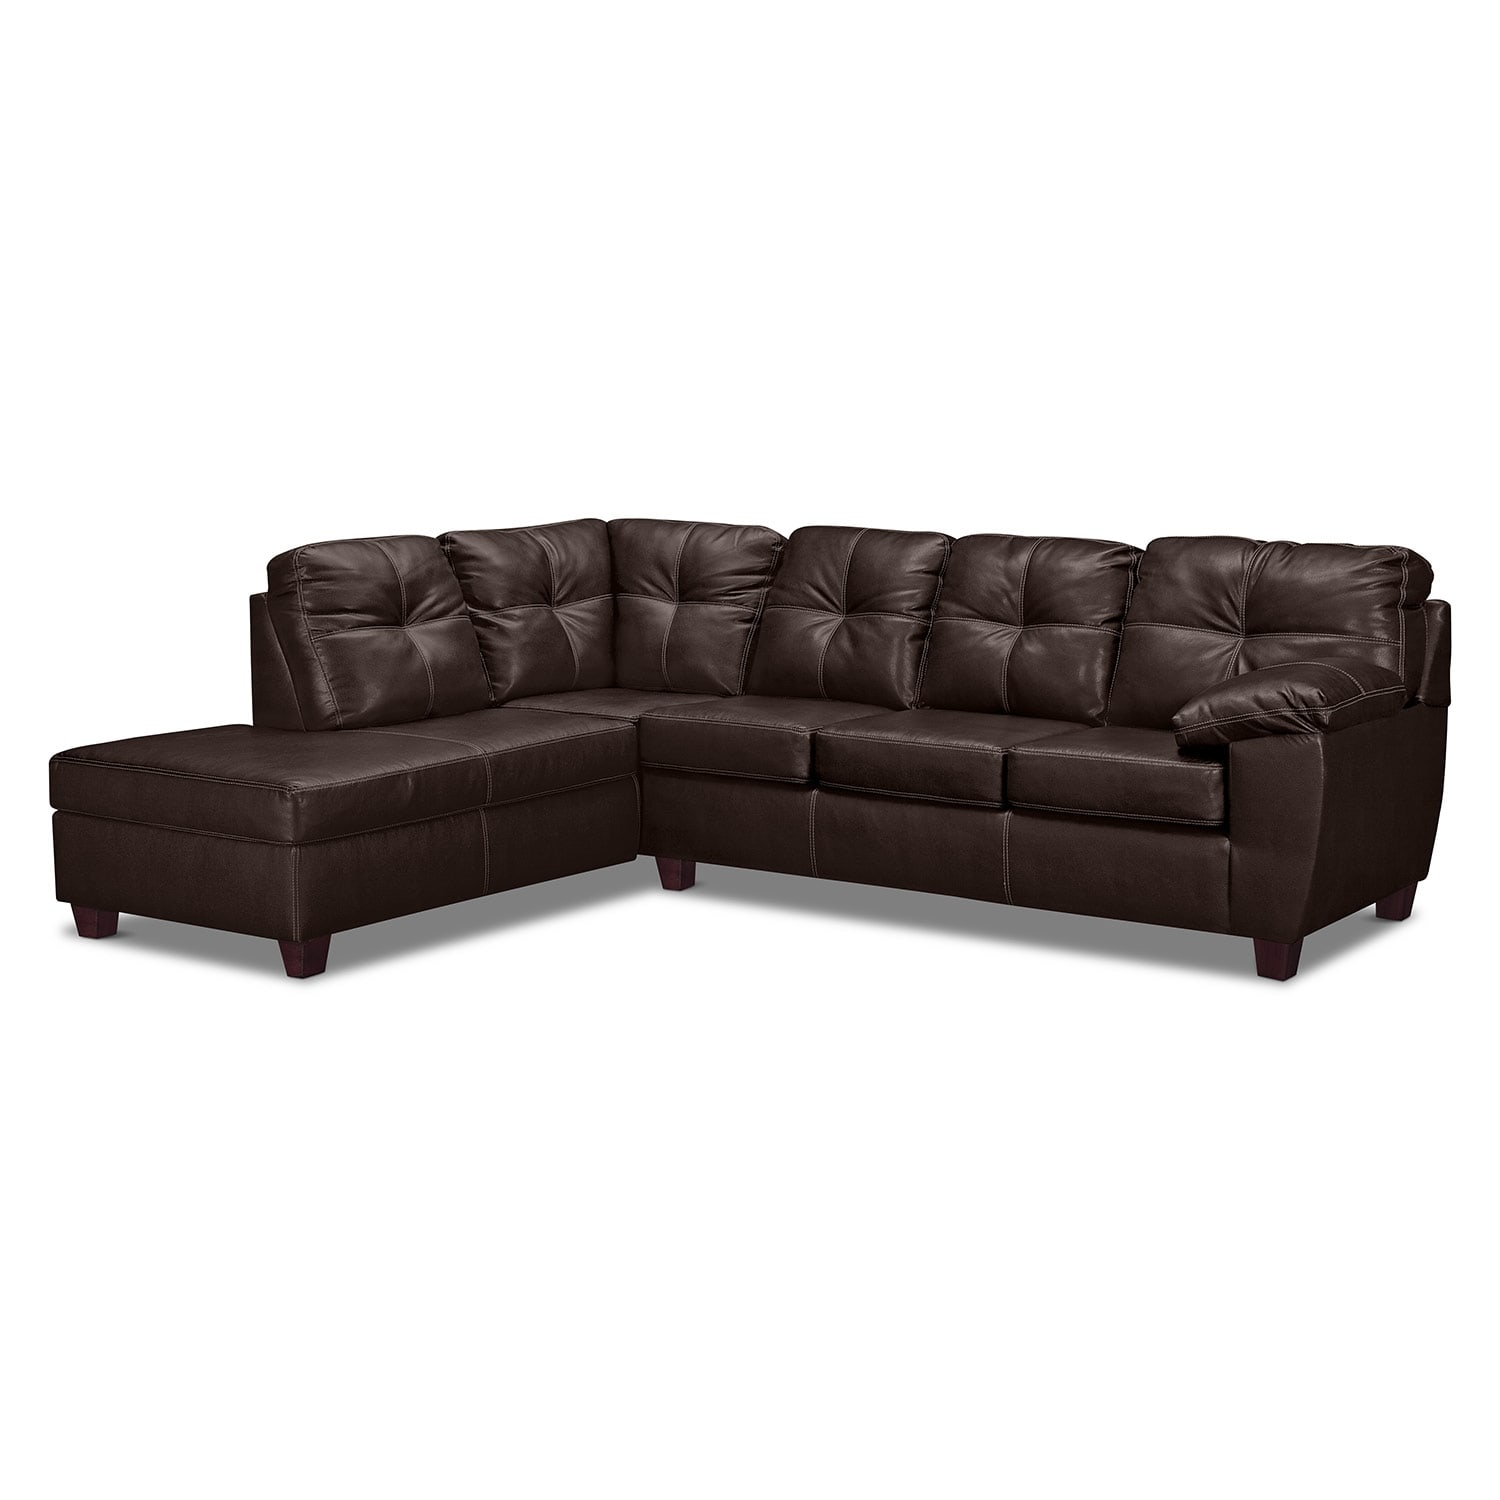 Rialto Brown 2 Pc. Innerspring Sleeper Sectional with Left-Facing Chaise